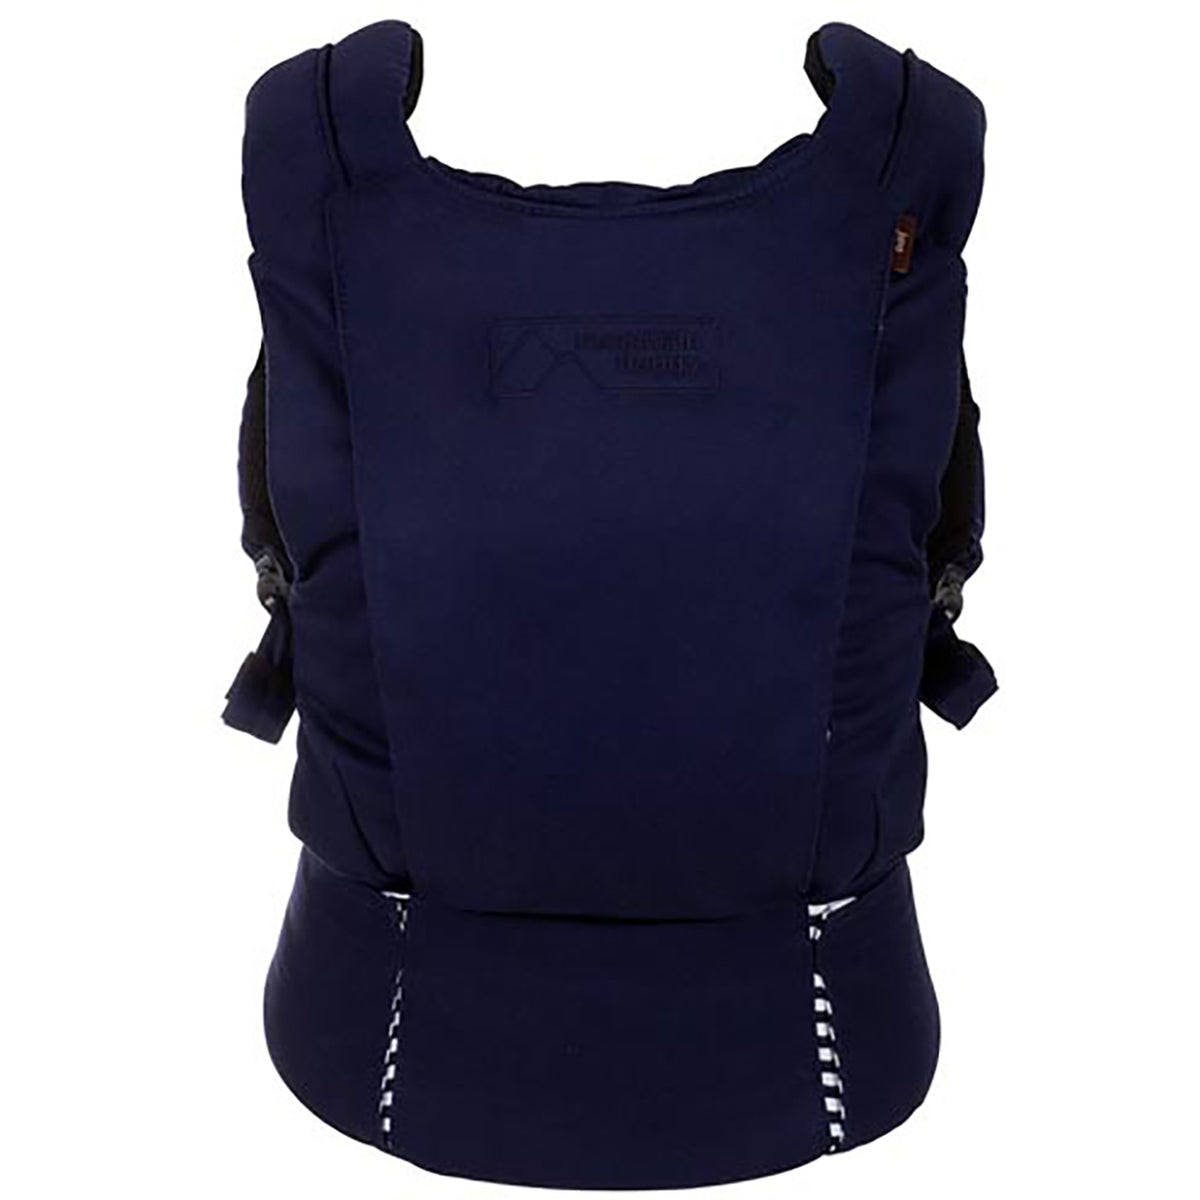 Mountain Buggy Juno Infant Carrier - Happy Baby